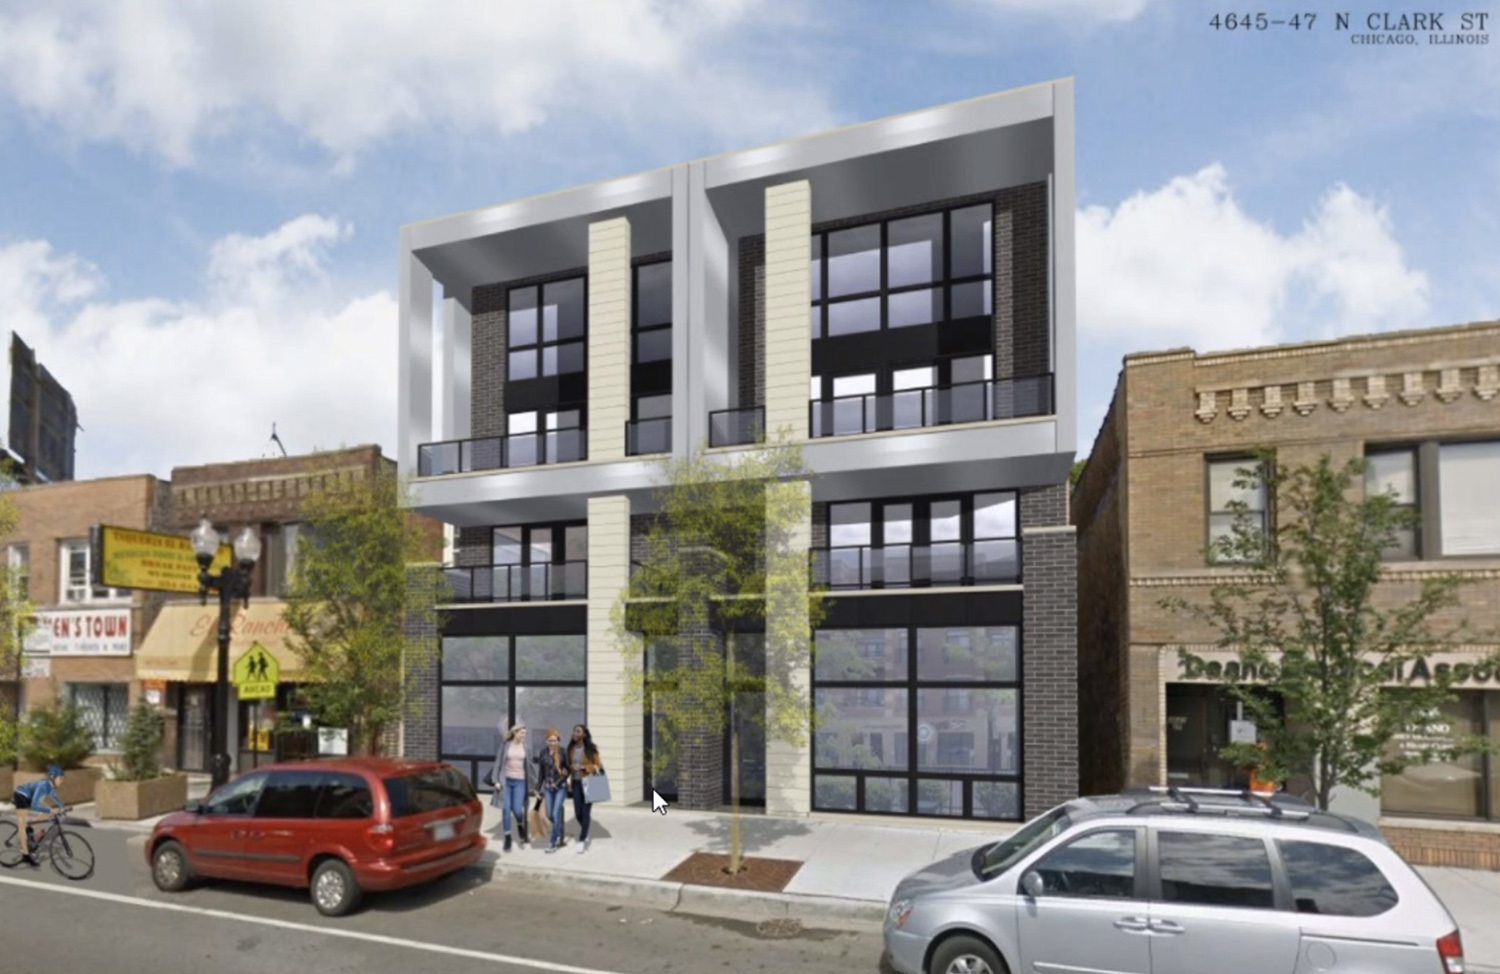 4645 N Clark Street. Rendering by Hanna Architects